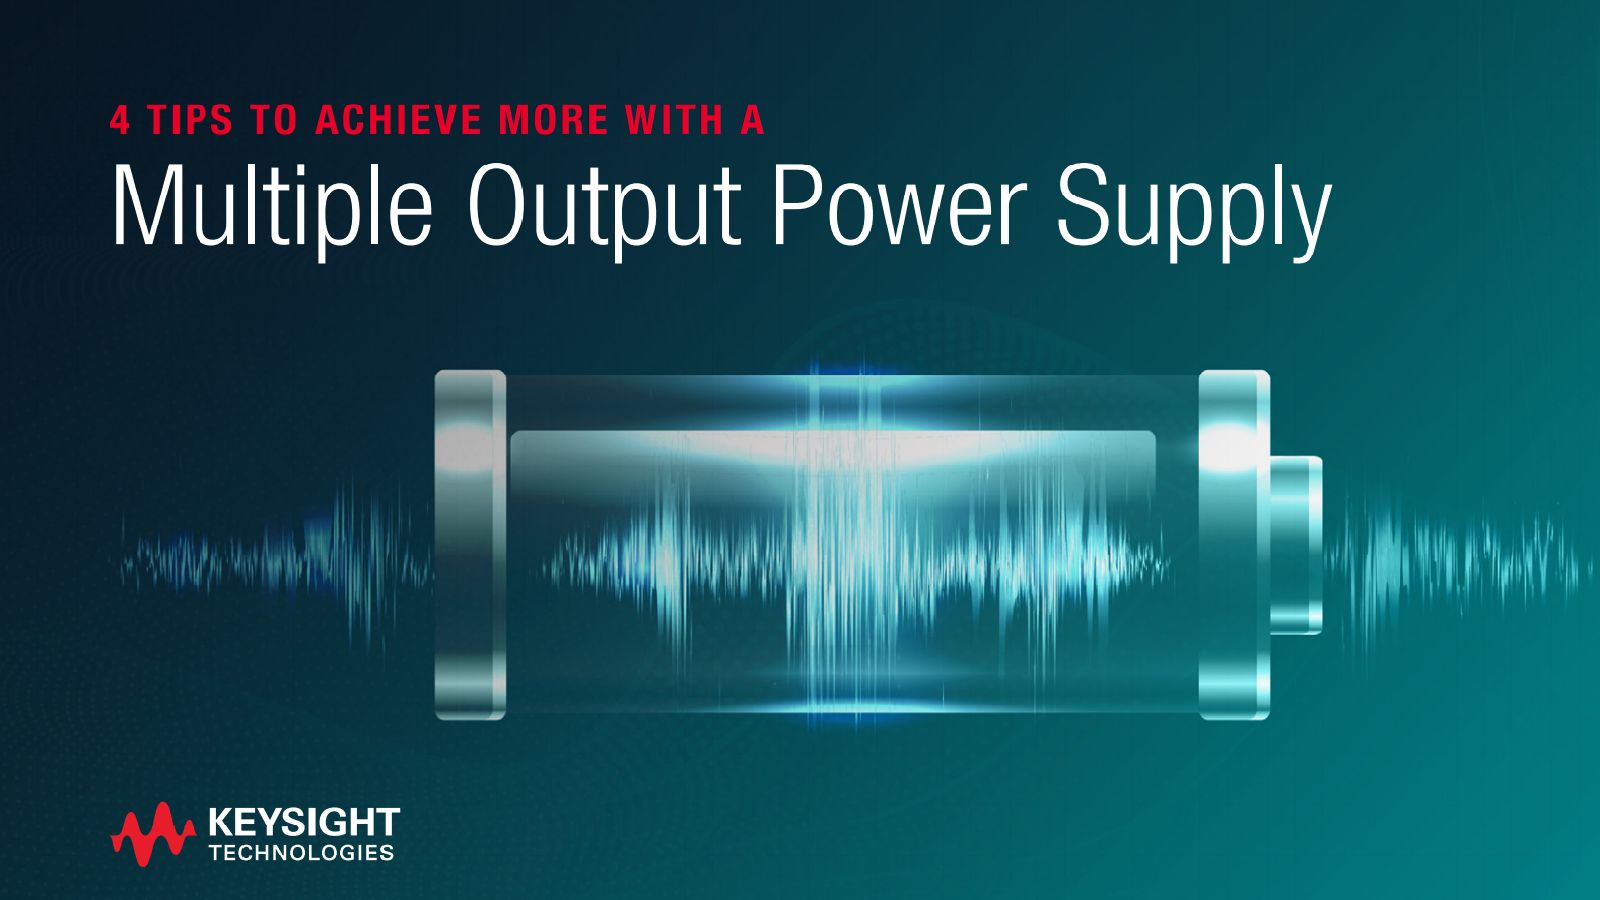 Four Tips to Achieve More with a Multiple Output Power Supply